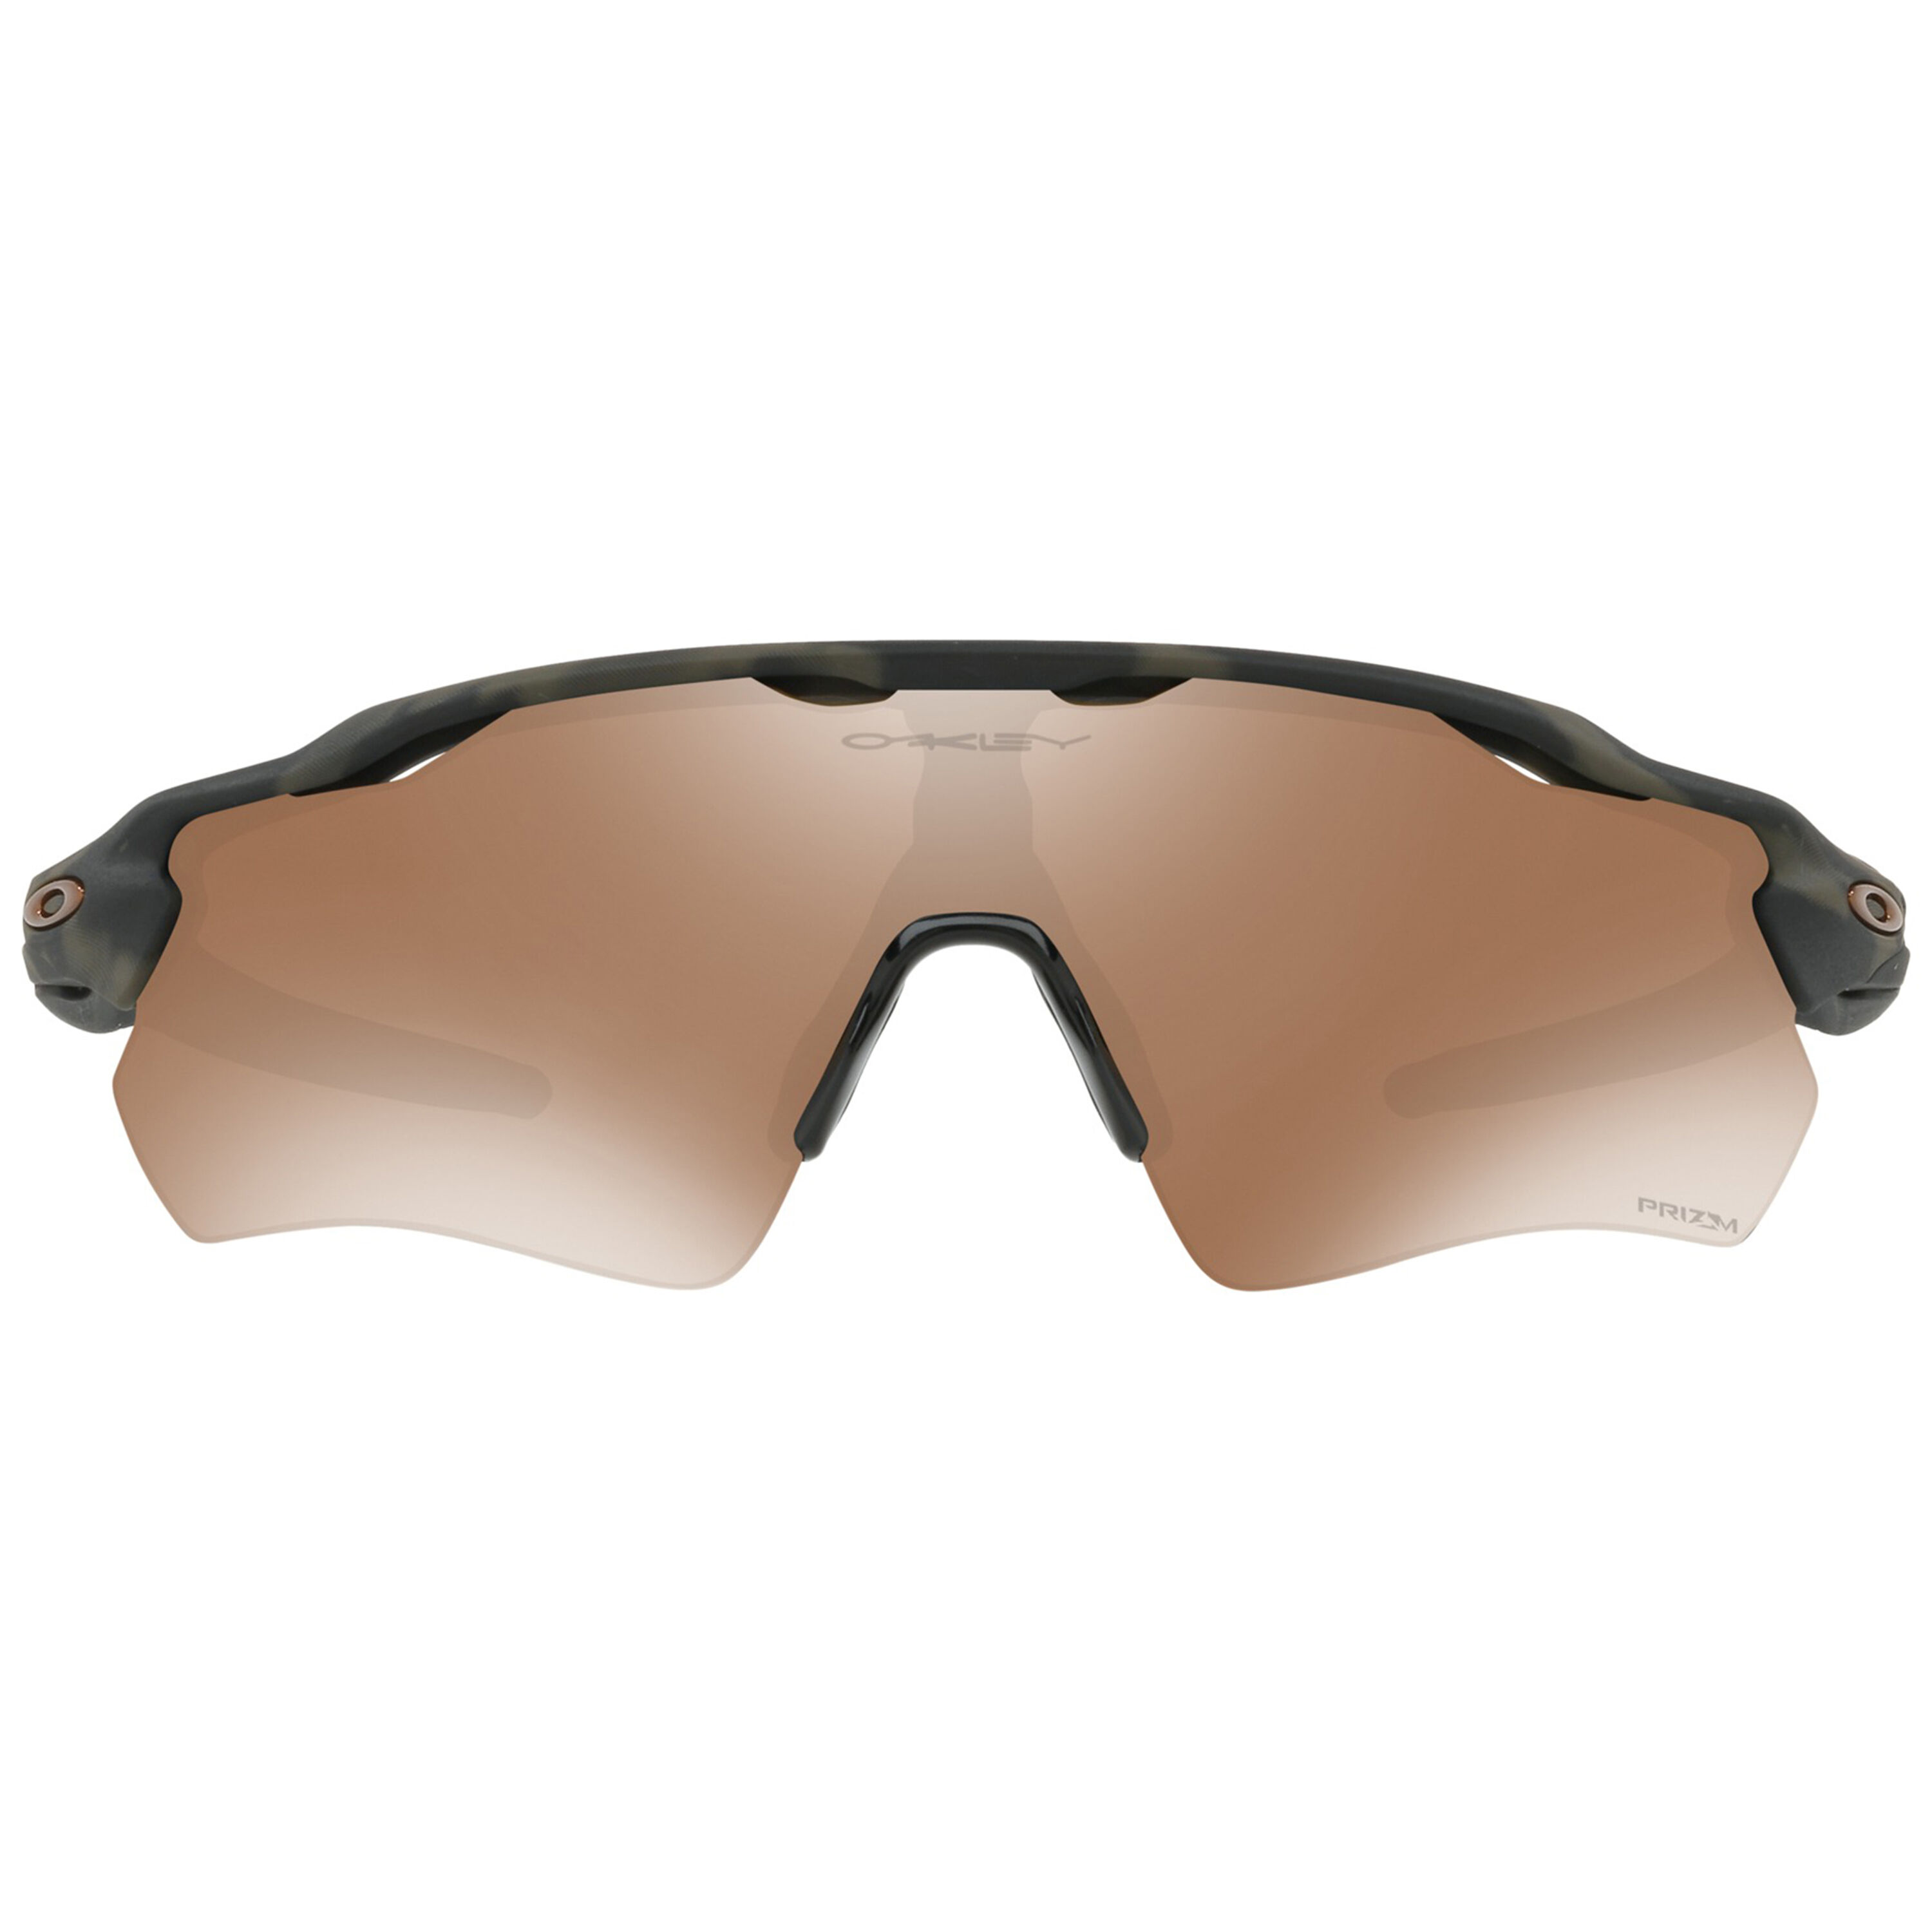 d24ae81bfa Repuestos Gafas Oakley Colombia – Southern California Weather Force